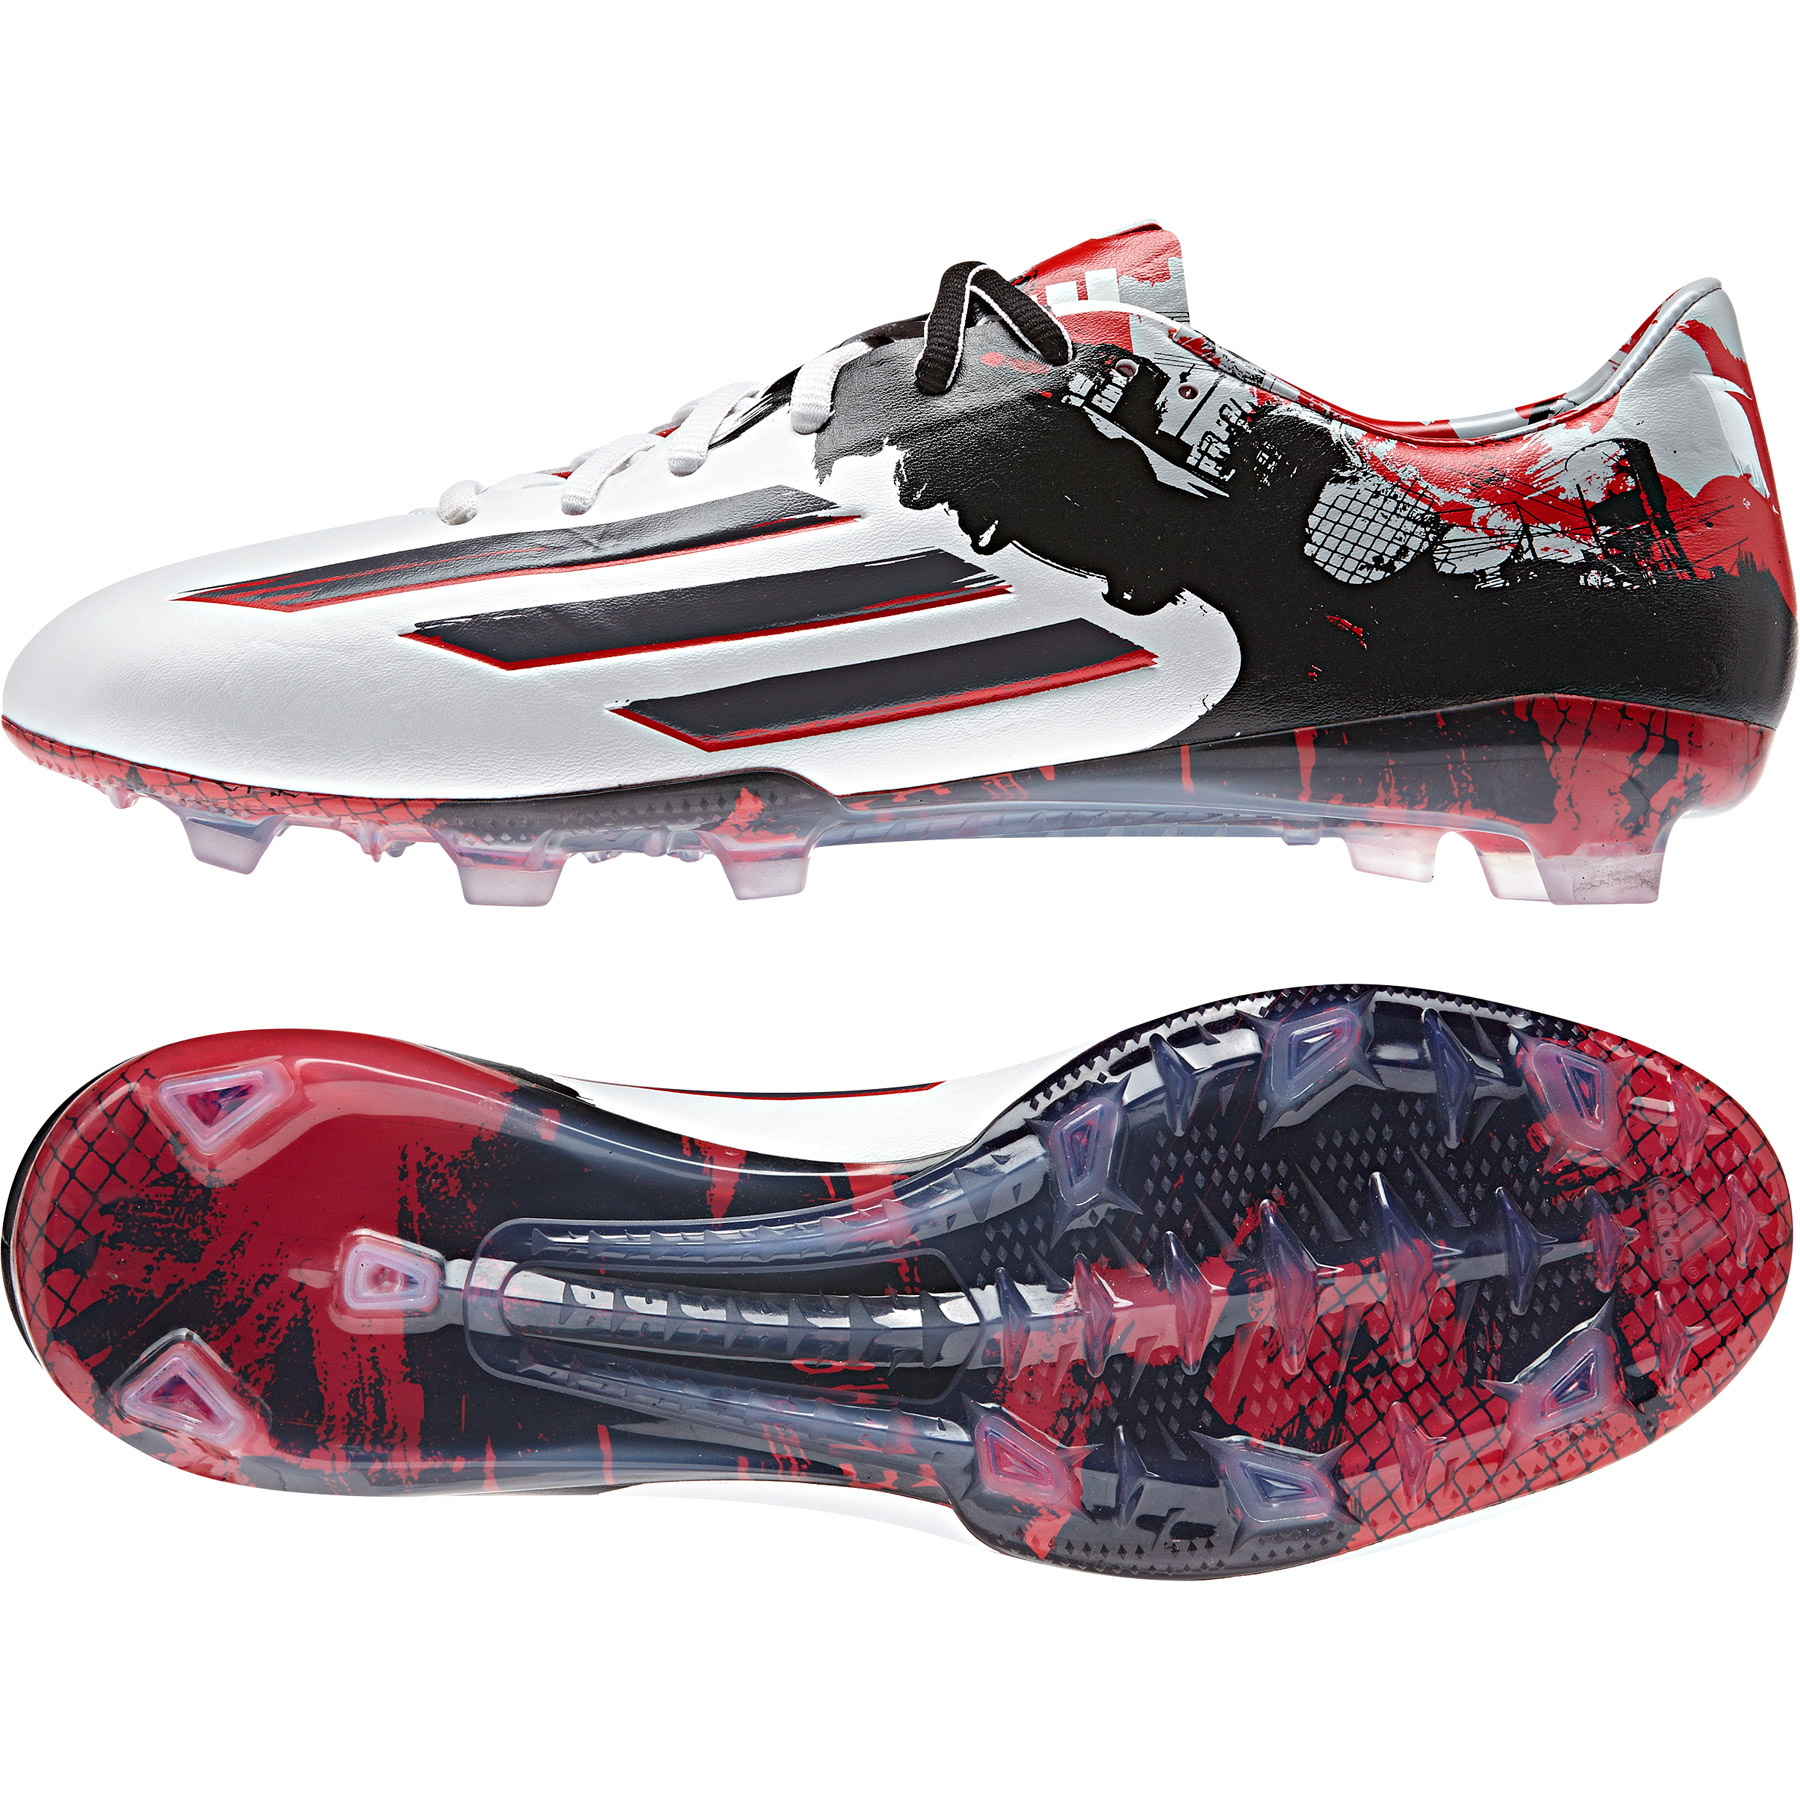 Adidas Messi 10.1 Firm Ground Football Boots White